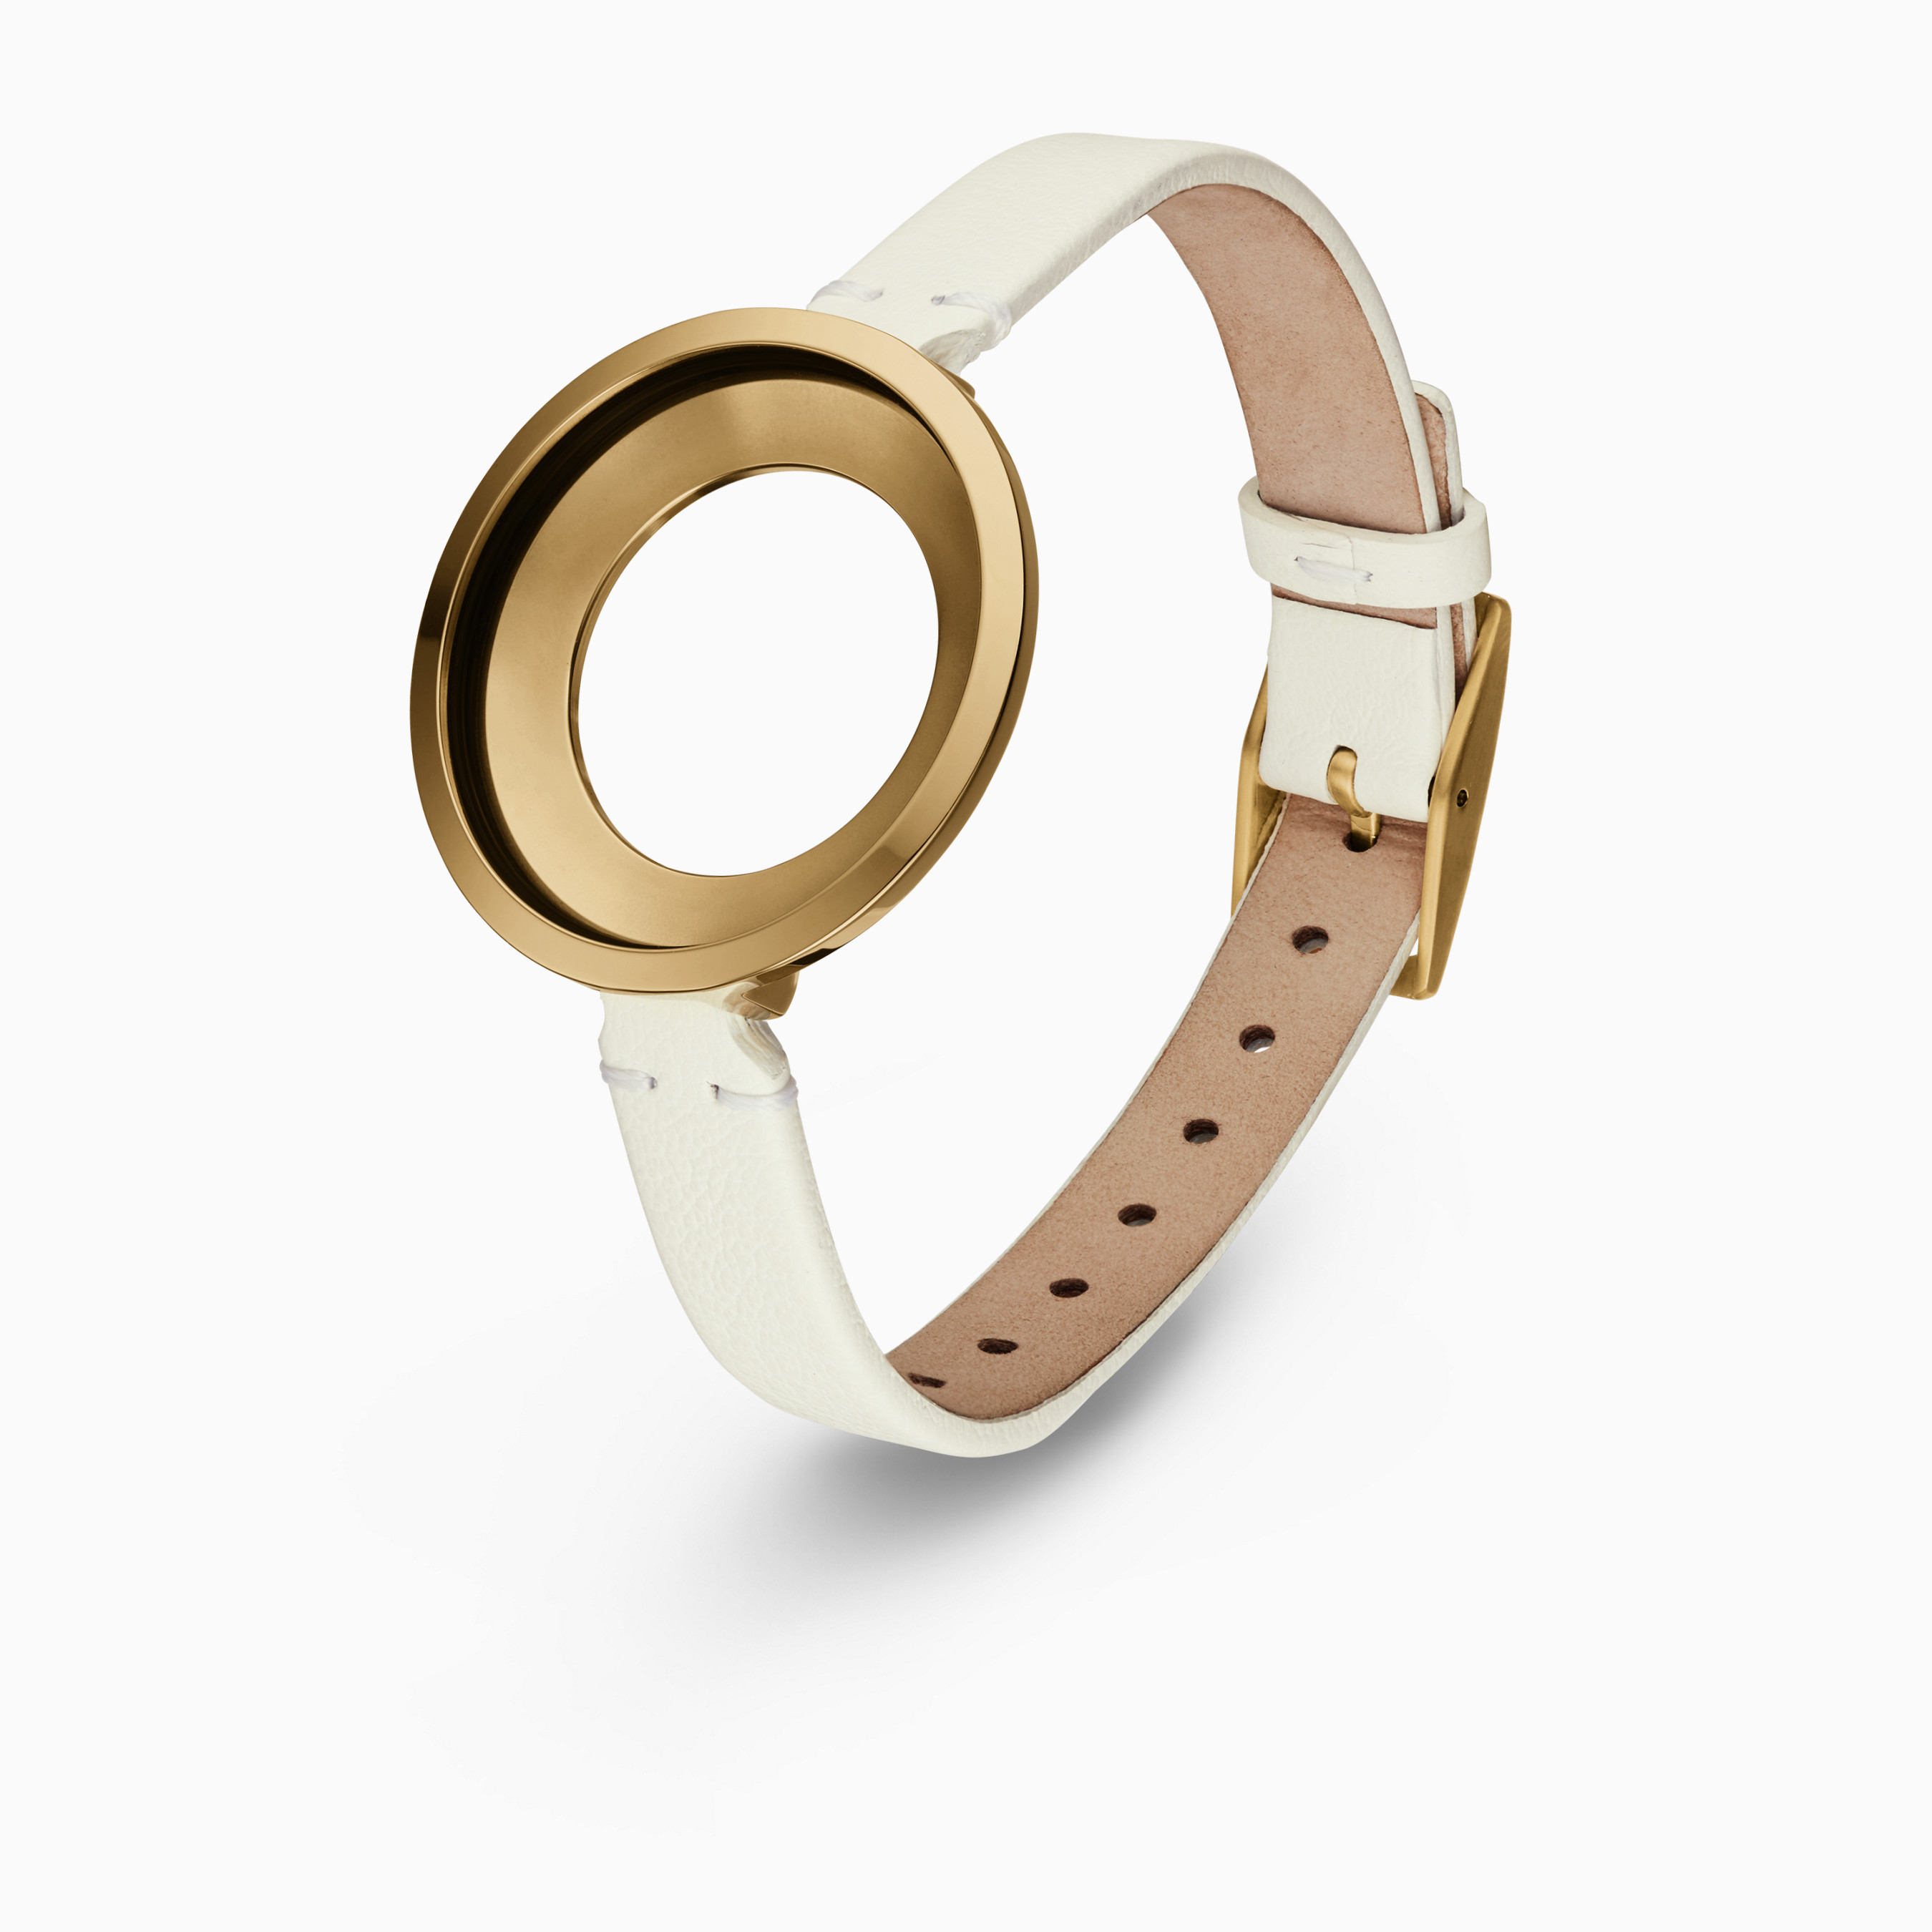 Misfit Shine 2 Advanced Fitness + Sleep Tracker - Misfit